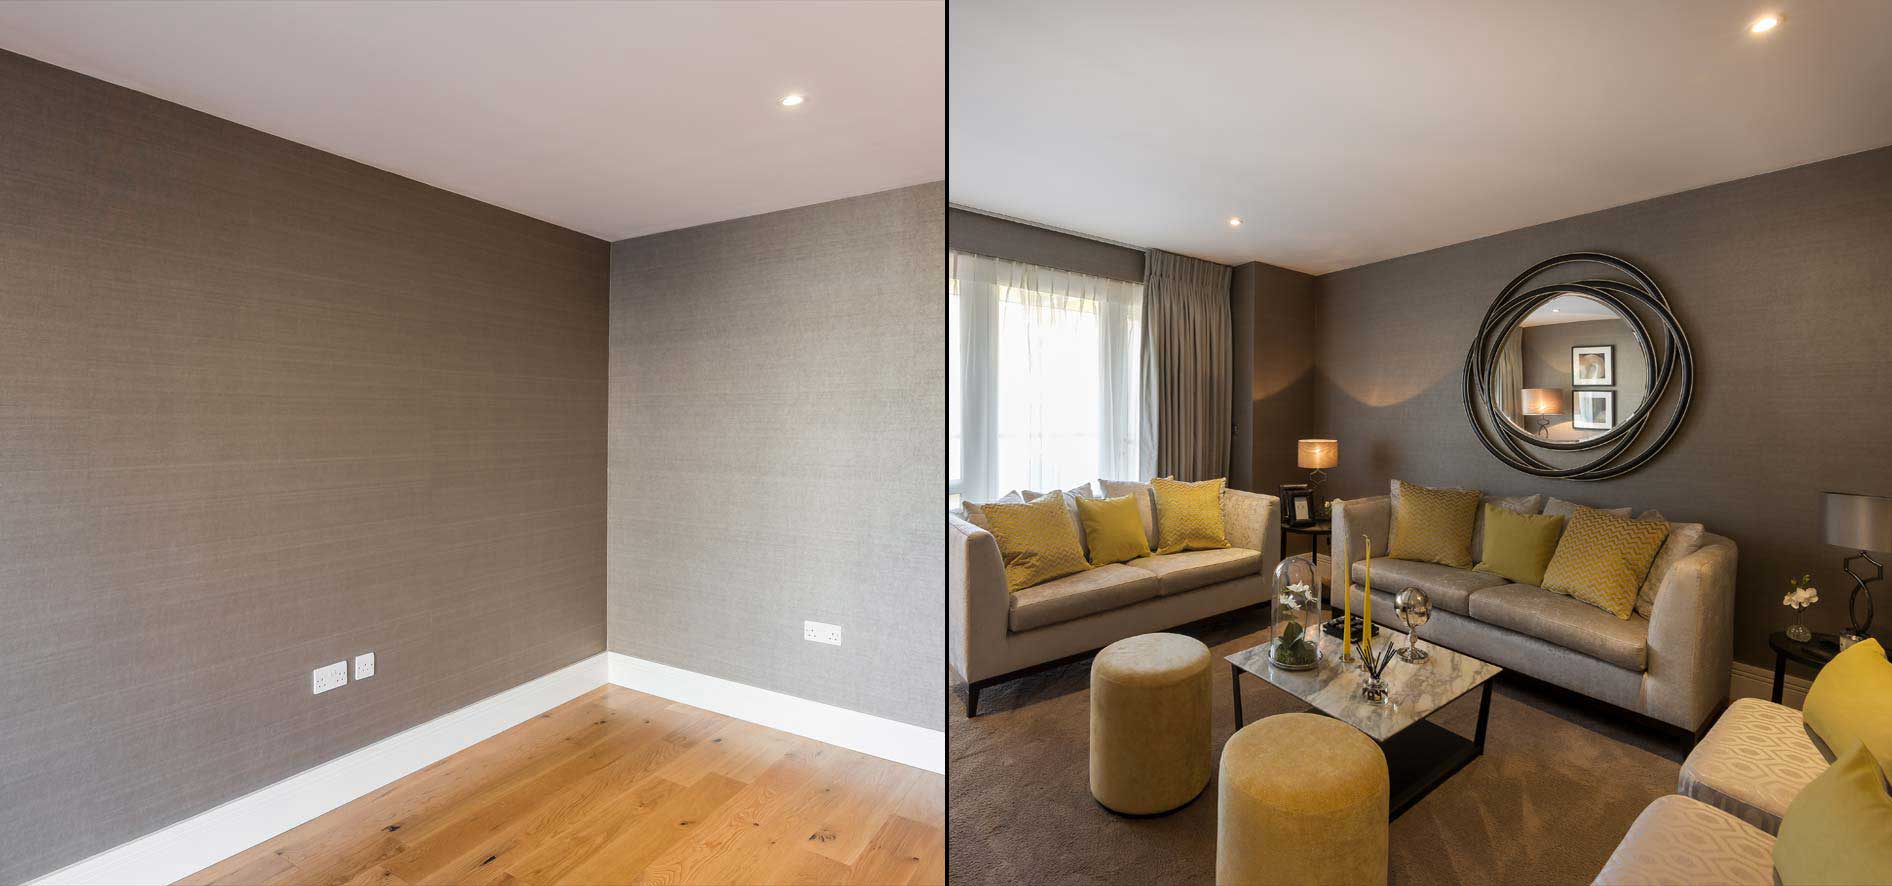 14-Napier-Square-Bromyard-Avenue-lounge-before-after